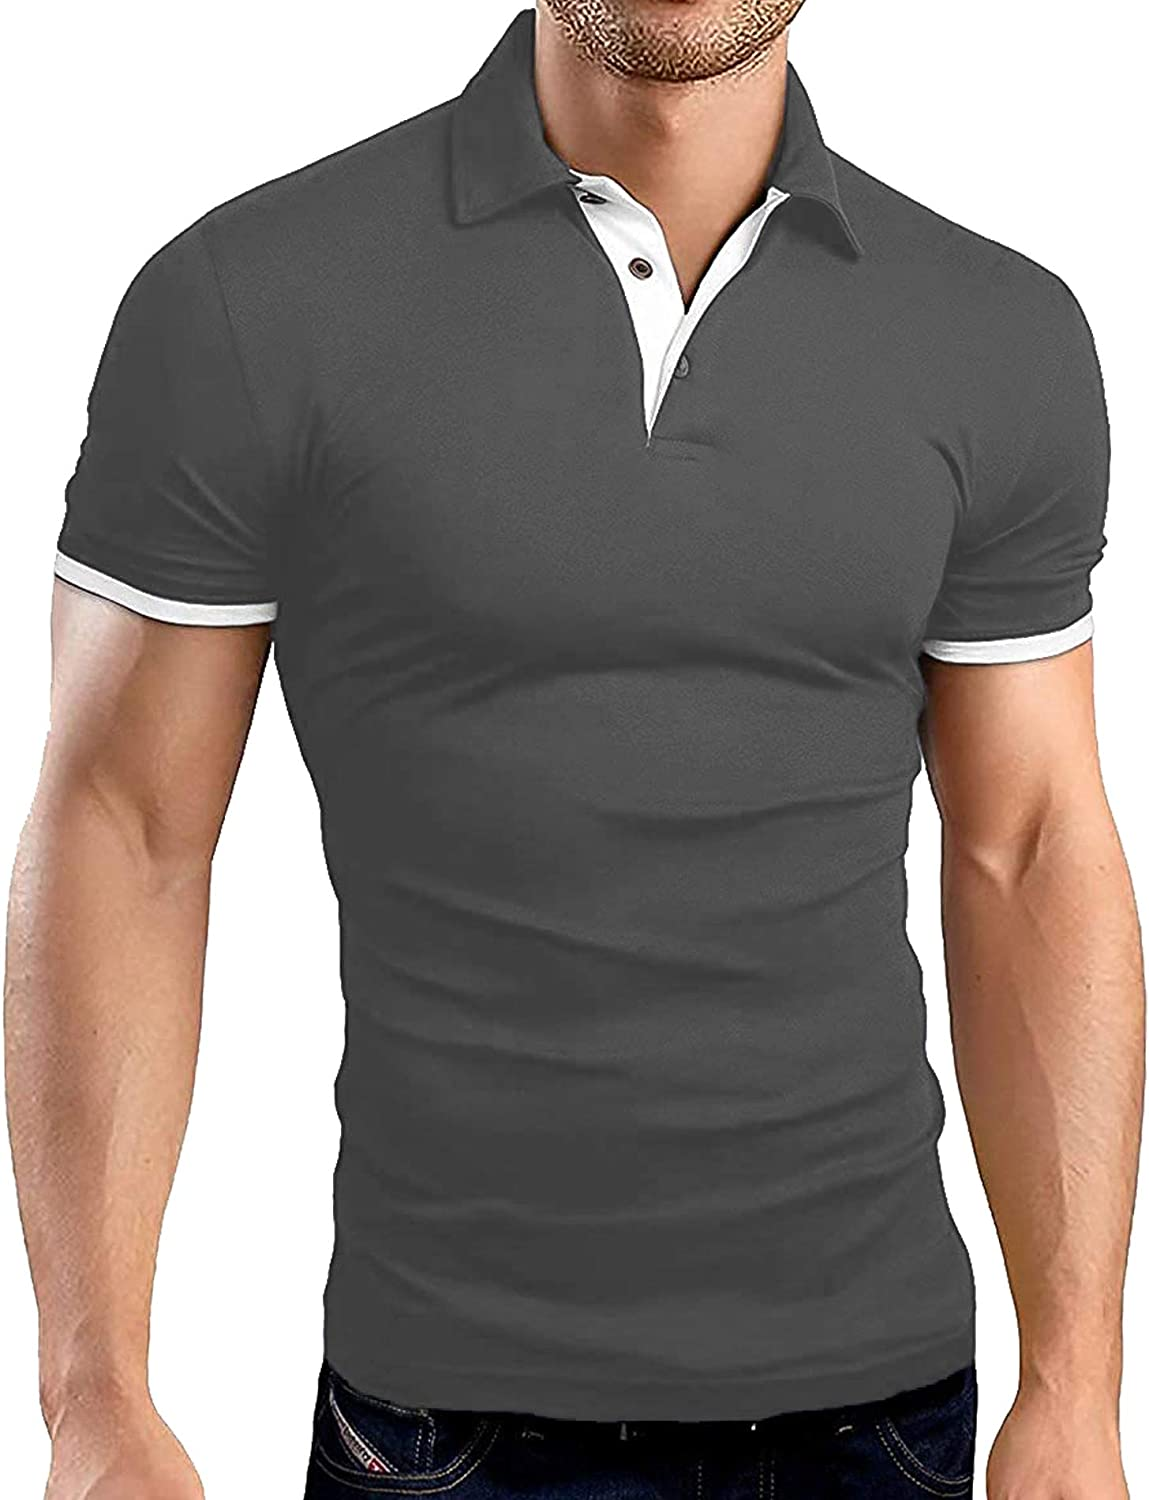 ZITY Mens Polo Shirt Cool Quick-Dry Sweat-Wicking Color Block Short Sleeve Sports Golf Tennis T-Shirt: Clothing